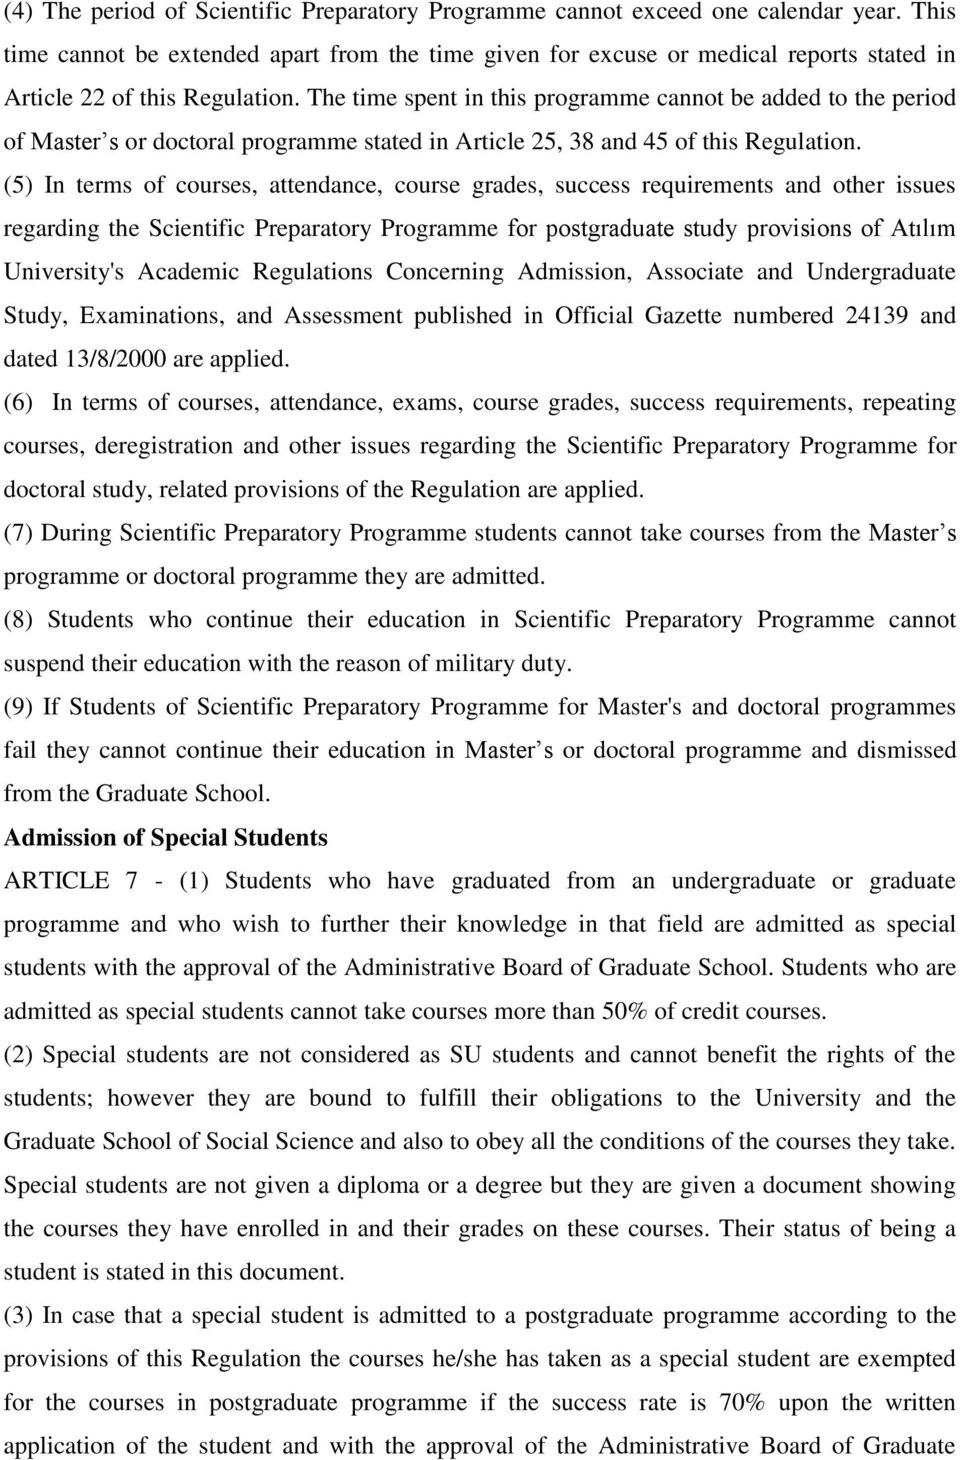 The time spent in this programme cannot be added to the period of Master s or doctoral programme stated in Article 25, 38 and 45 of this Regulation.